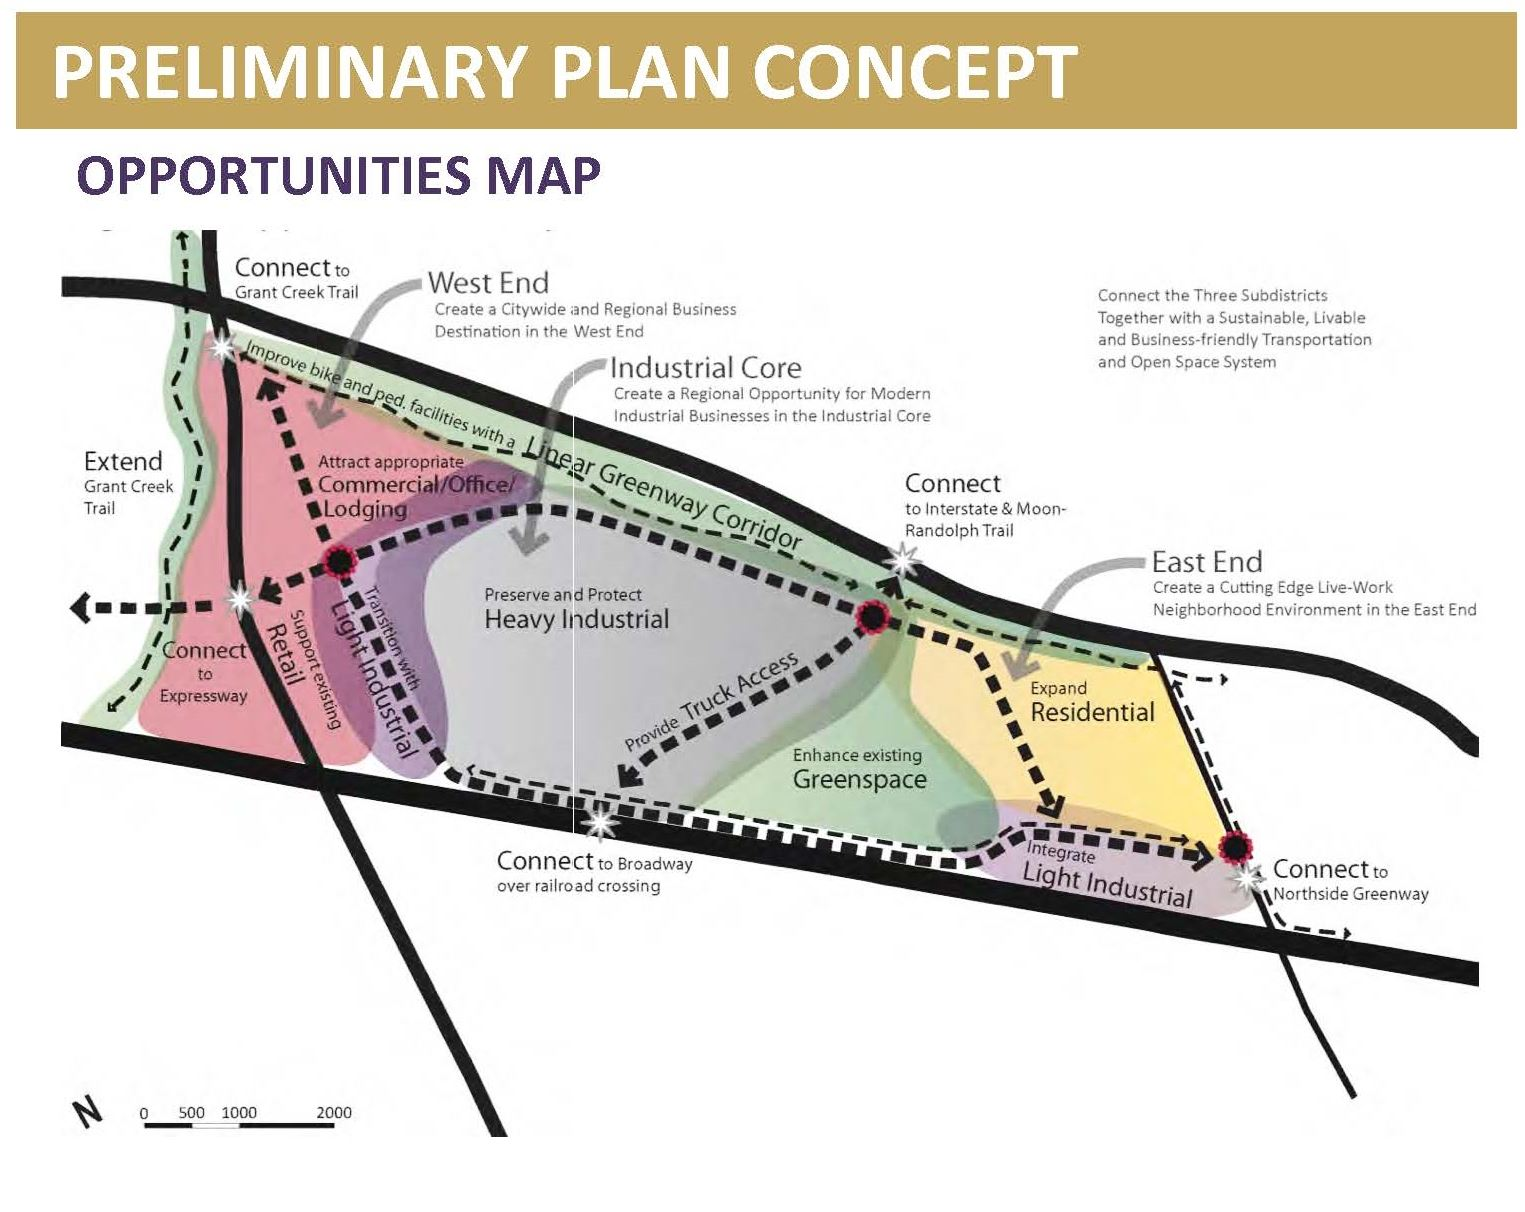 Preliminary Concept Map of the NRSS Master Plan